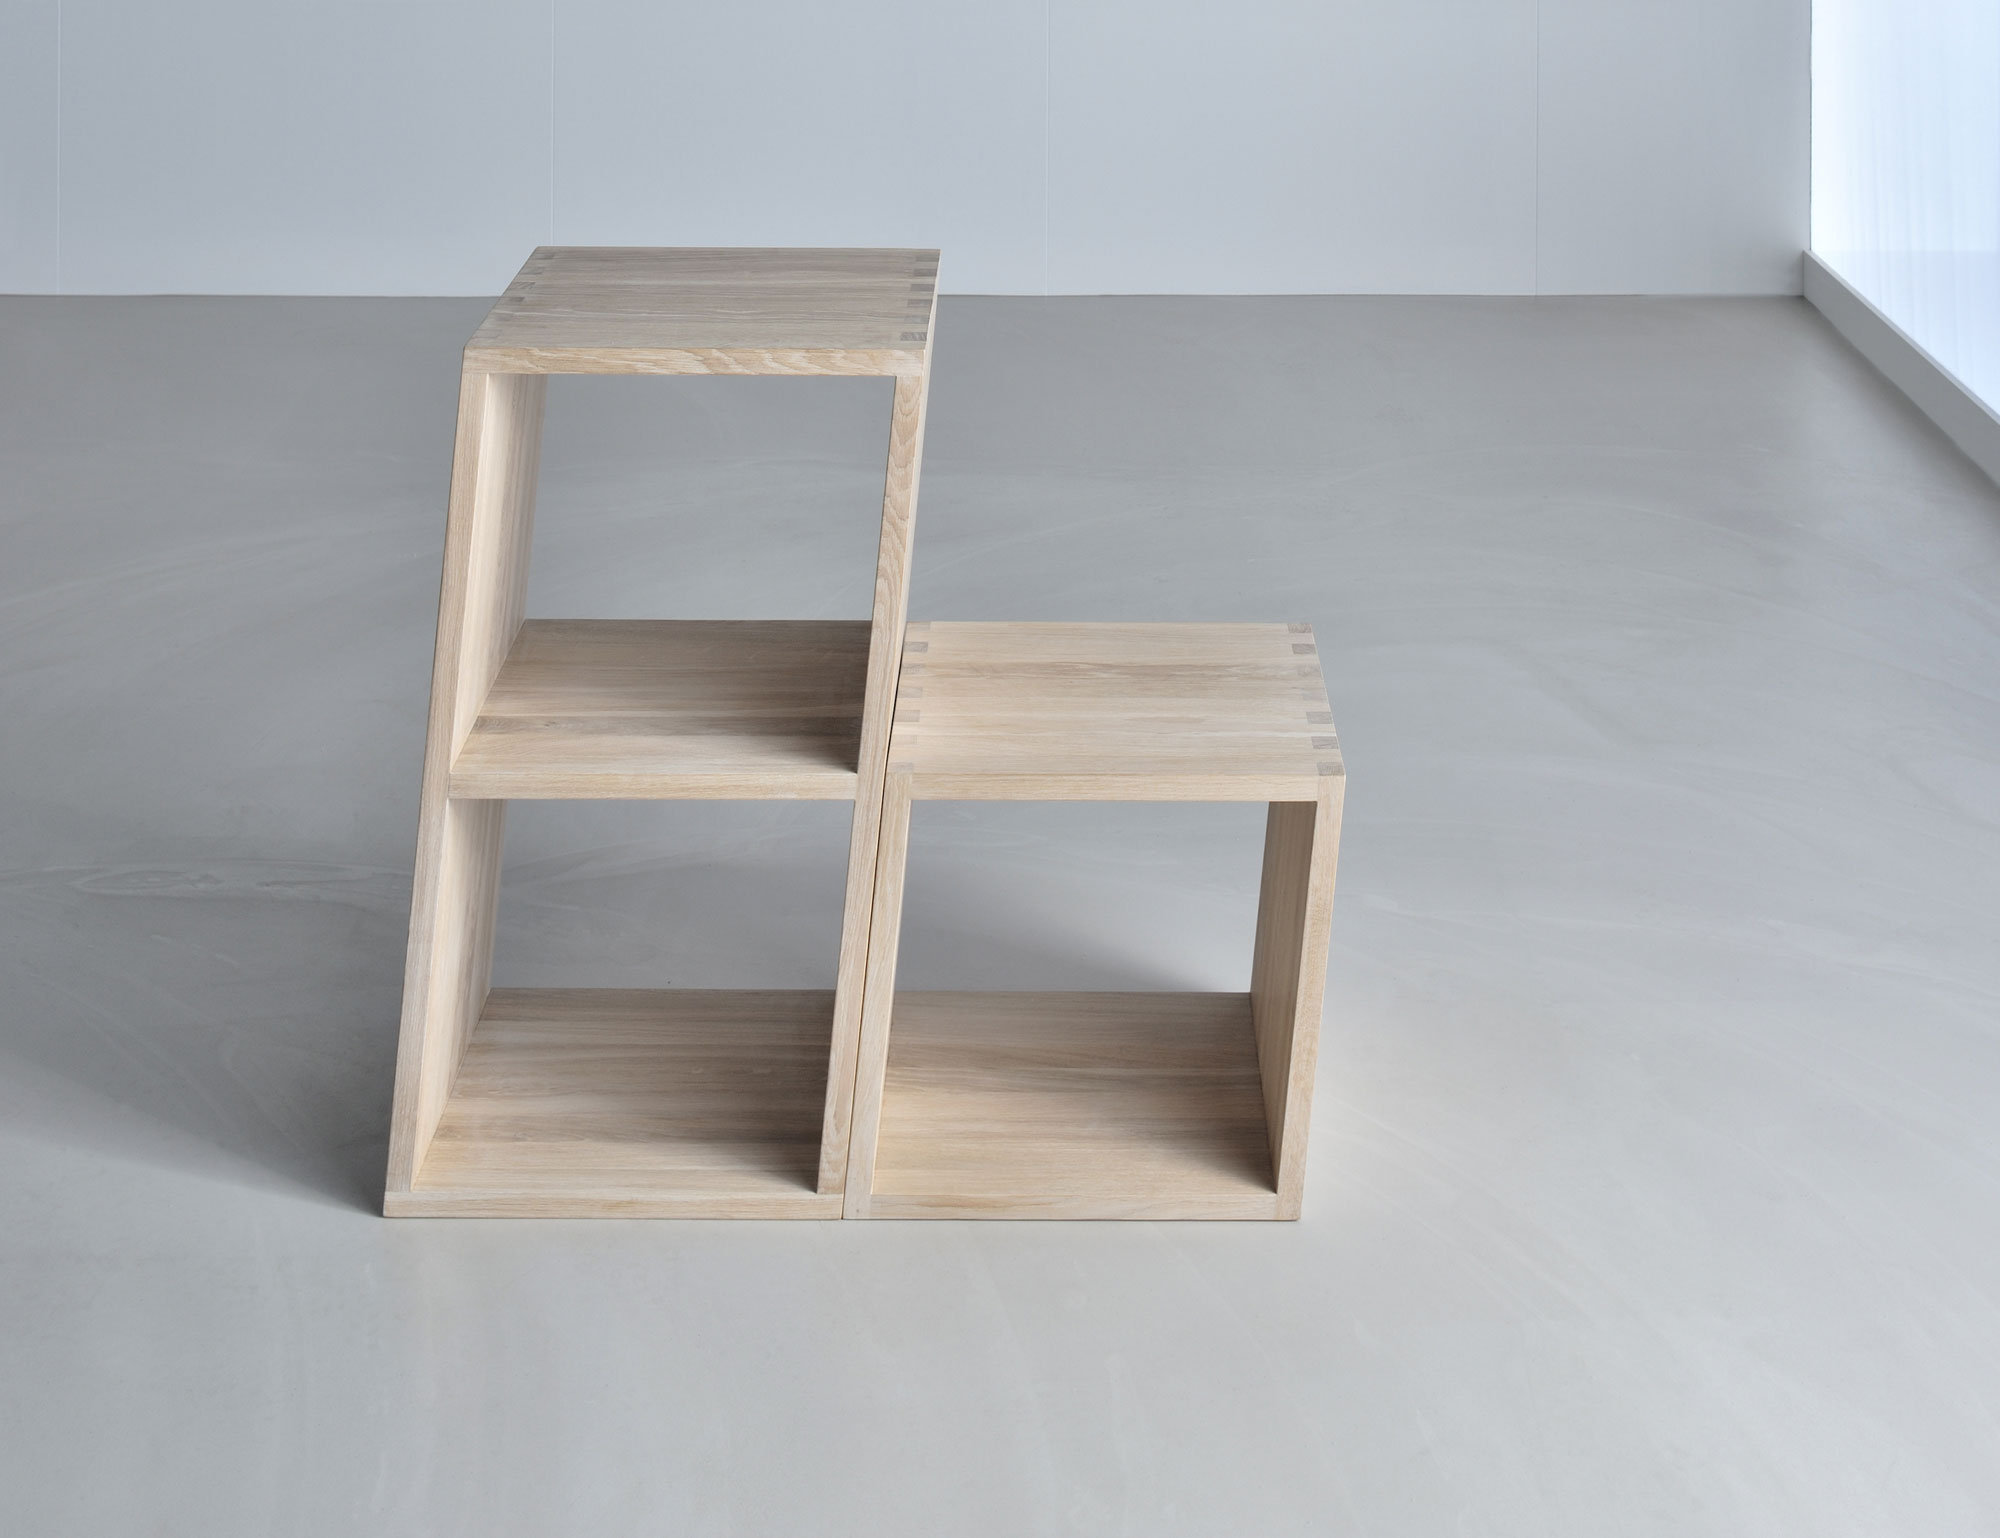 Wooden Designer Shelf PISA 3345 custom made in solid wood by vitamin design